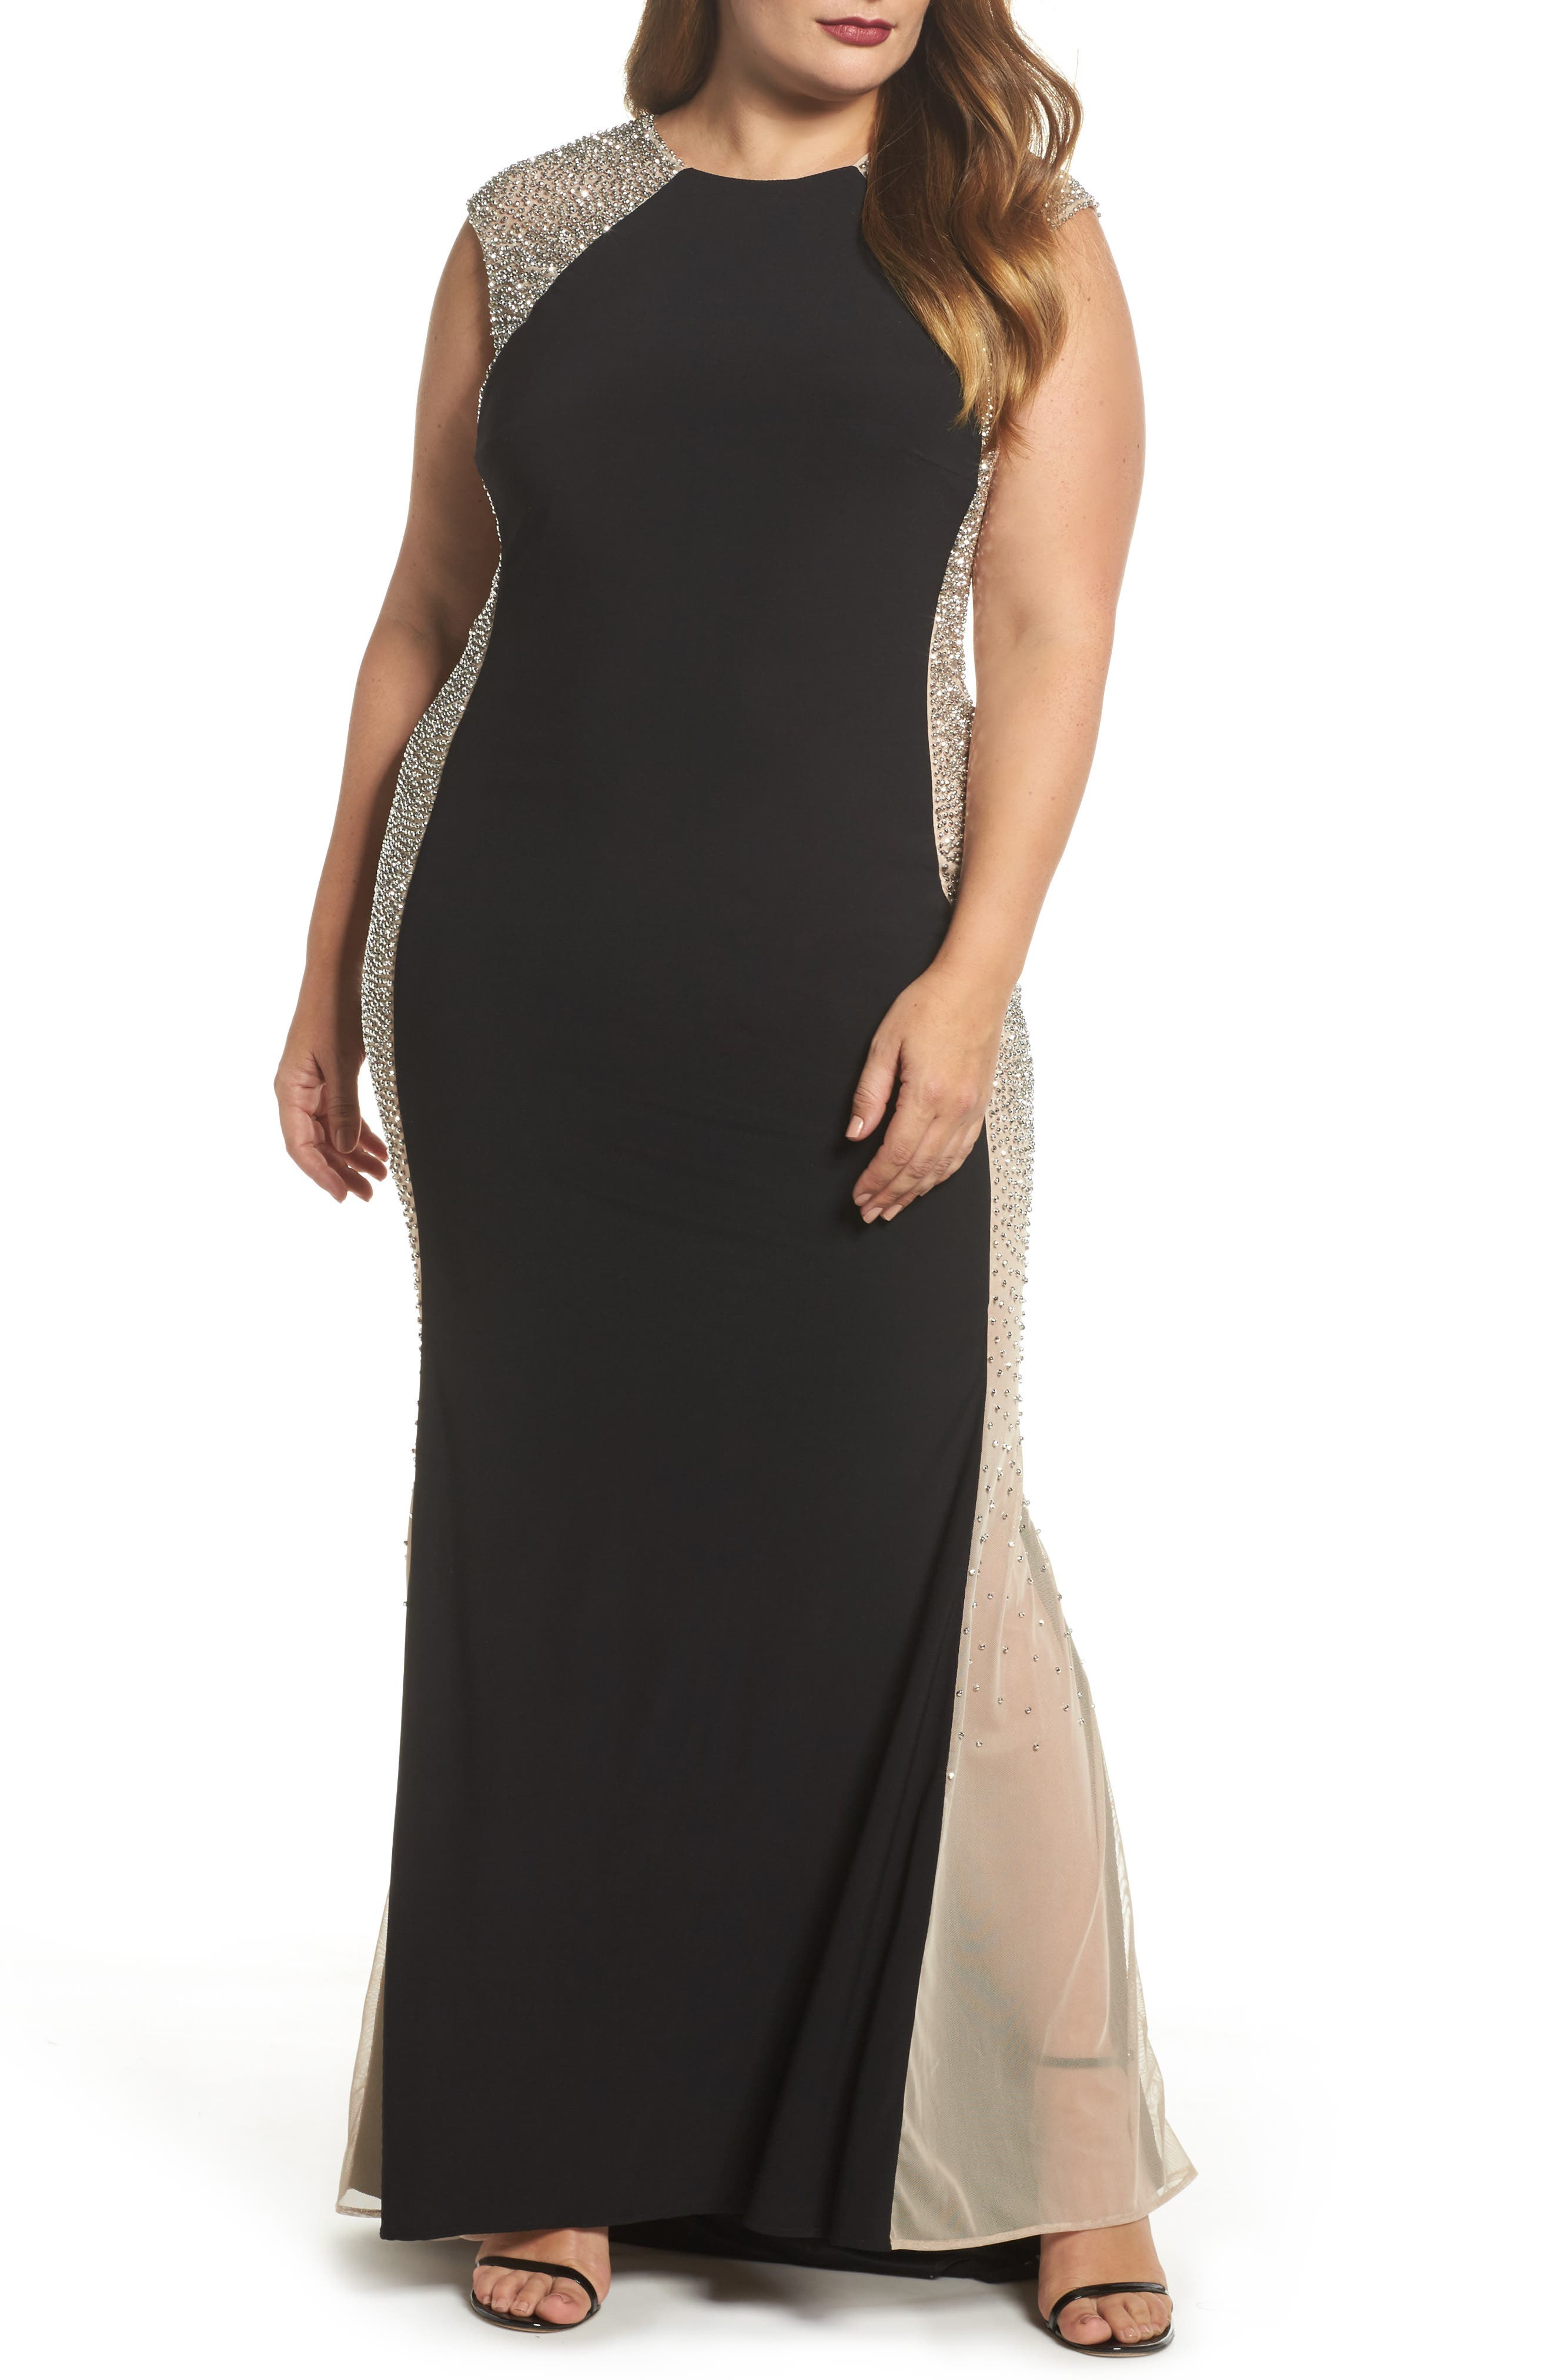 Beaded High Neck Column Gown,                         Main,                         color, Black/ Nude/ Silver